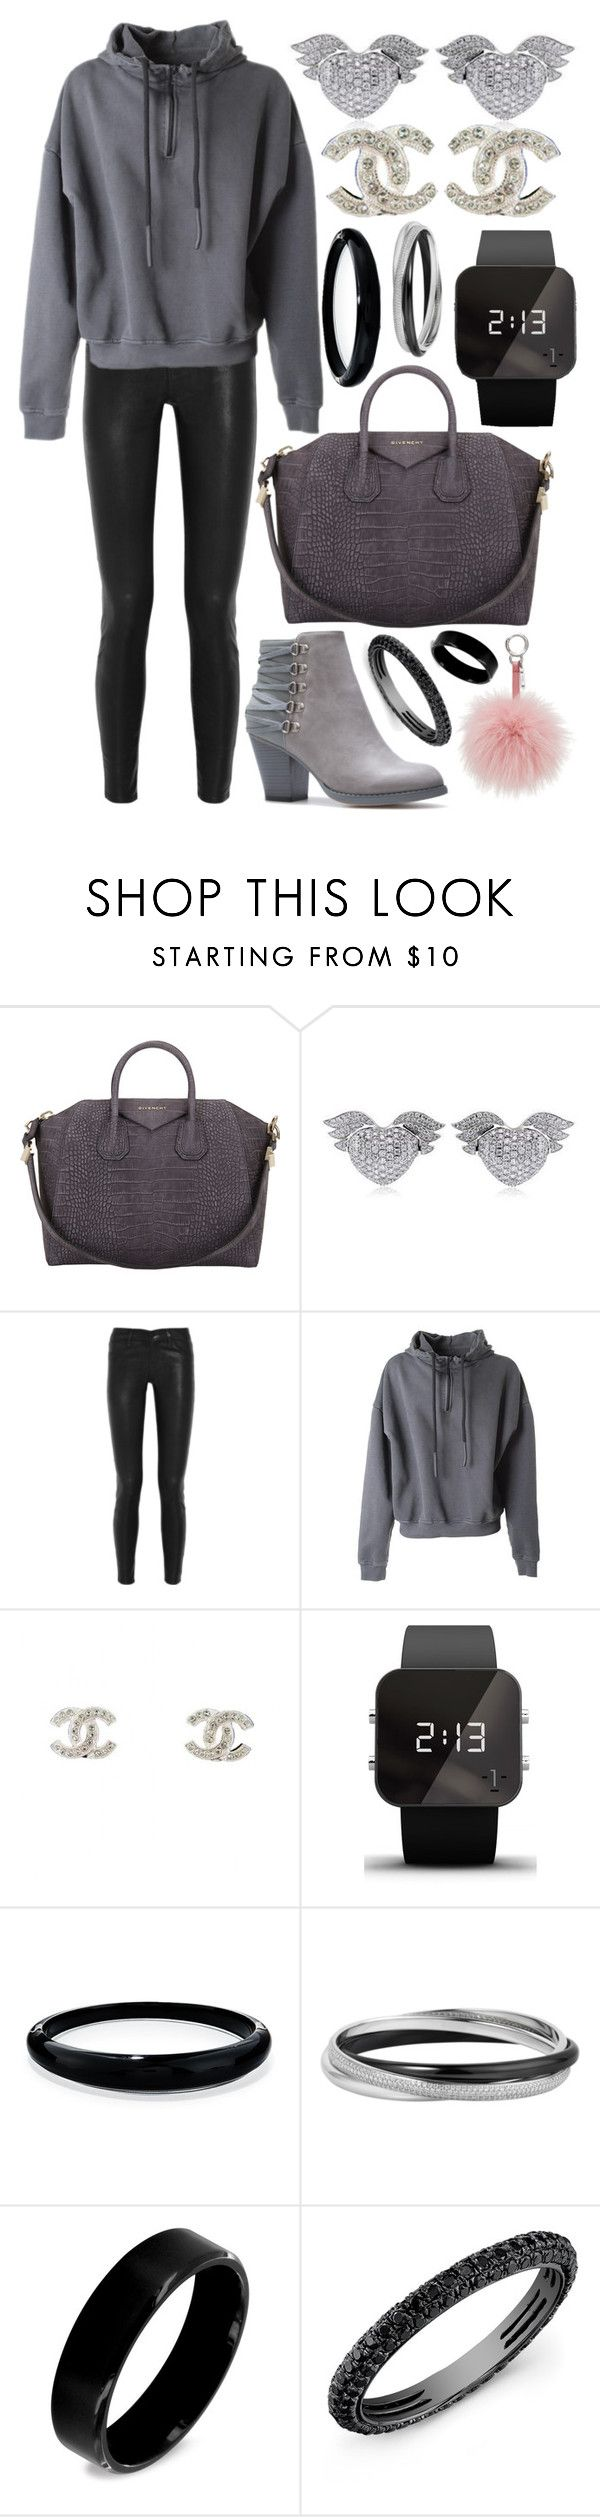 """""""2957"""" by alex94a ❤ liked on Polyvore featuring Givenchy, Theo Fennell, J Brand, adidas Originals, Chanel, 1:Face, Alexis Bittar, Fendi, West Coast Jewelry and Anne Sisteron"""